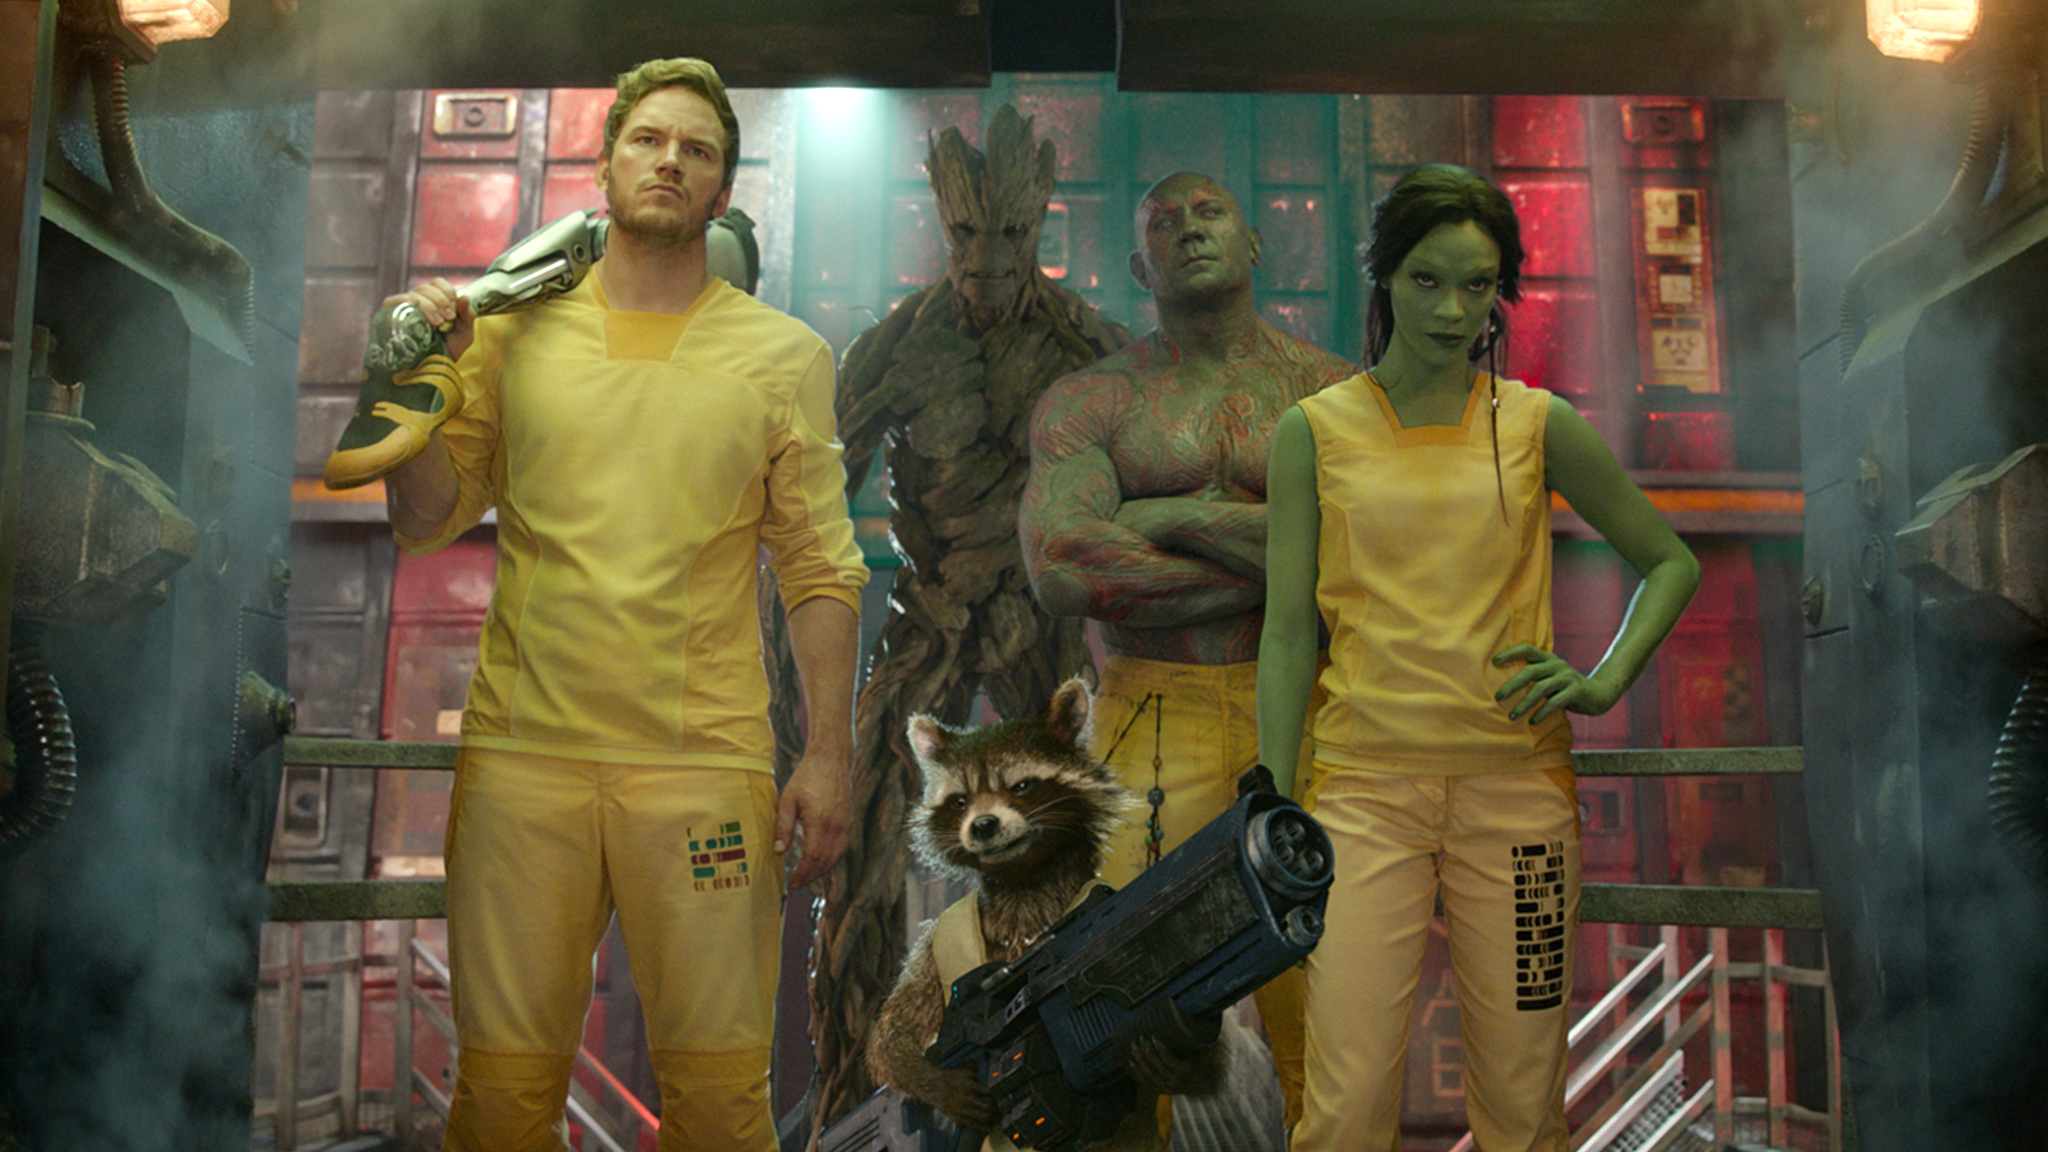 Guardians Of The Galaxy, superhero movies